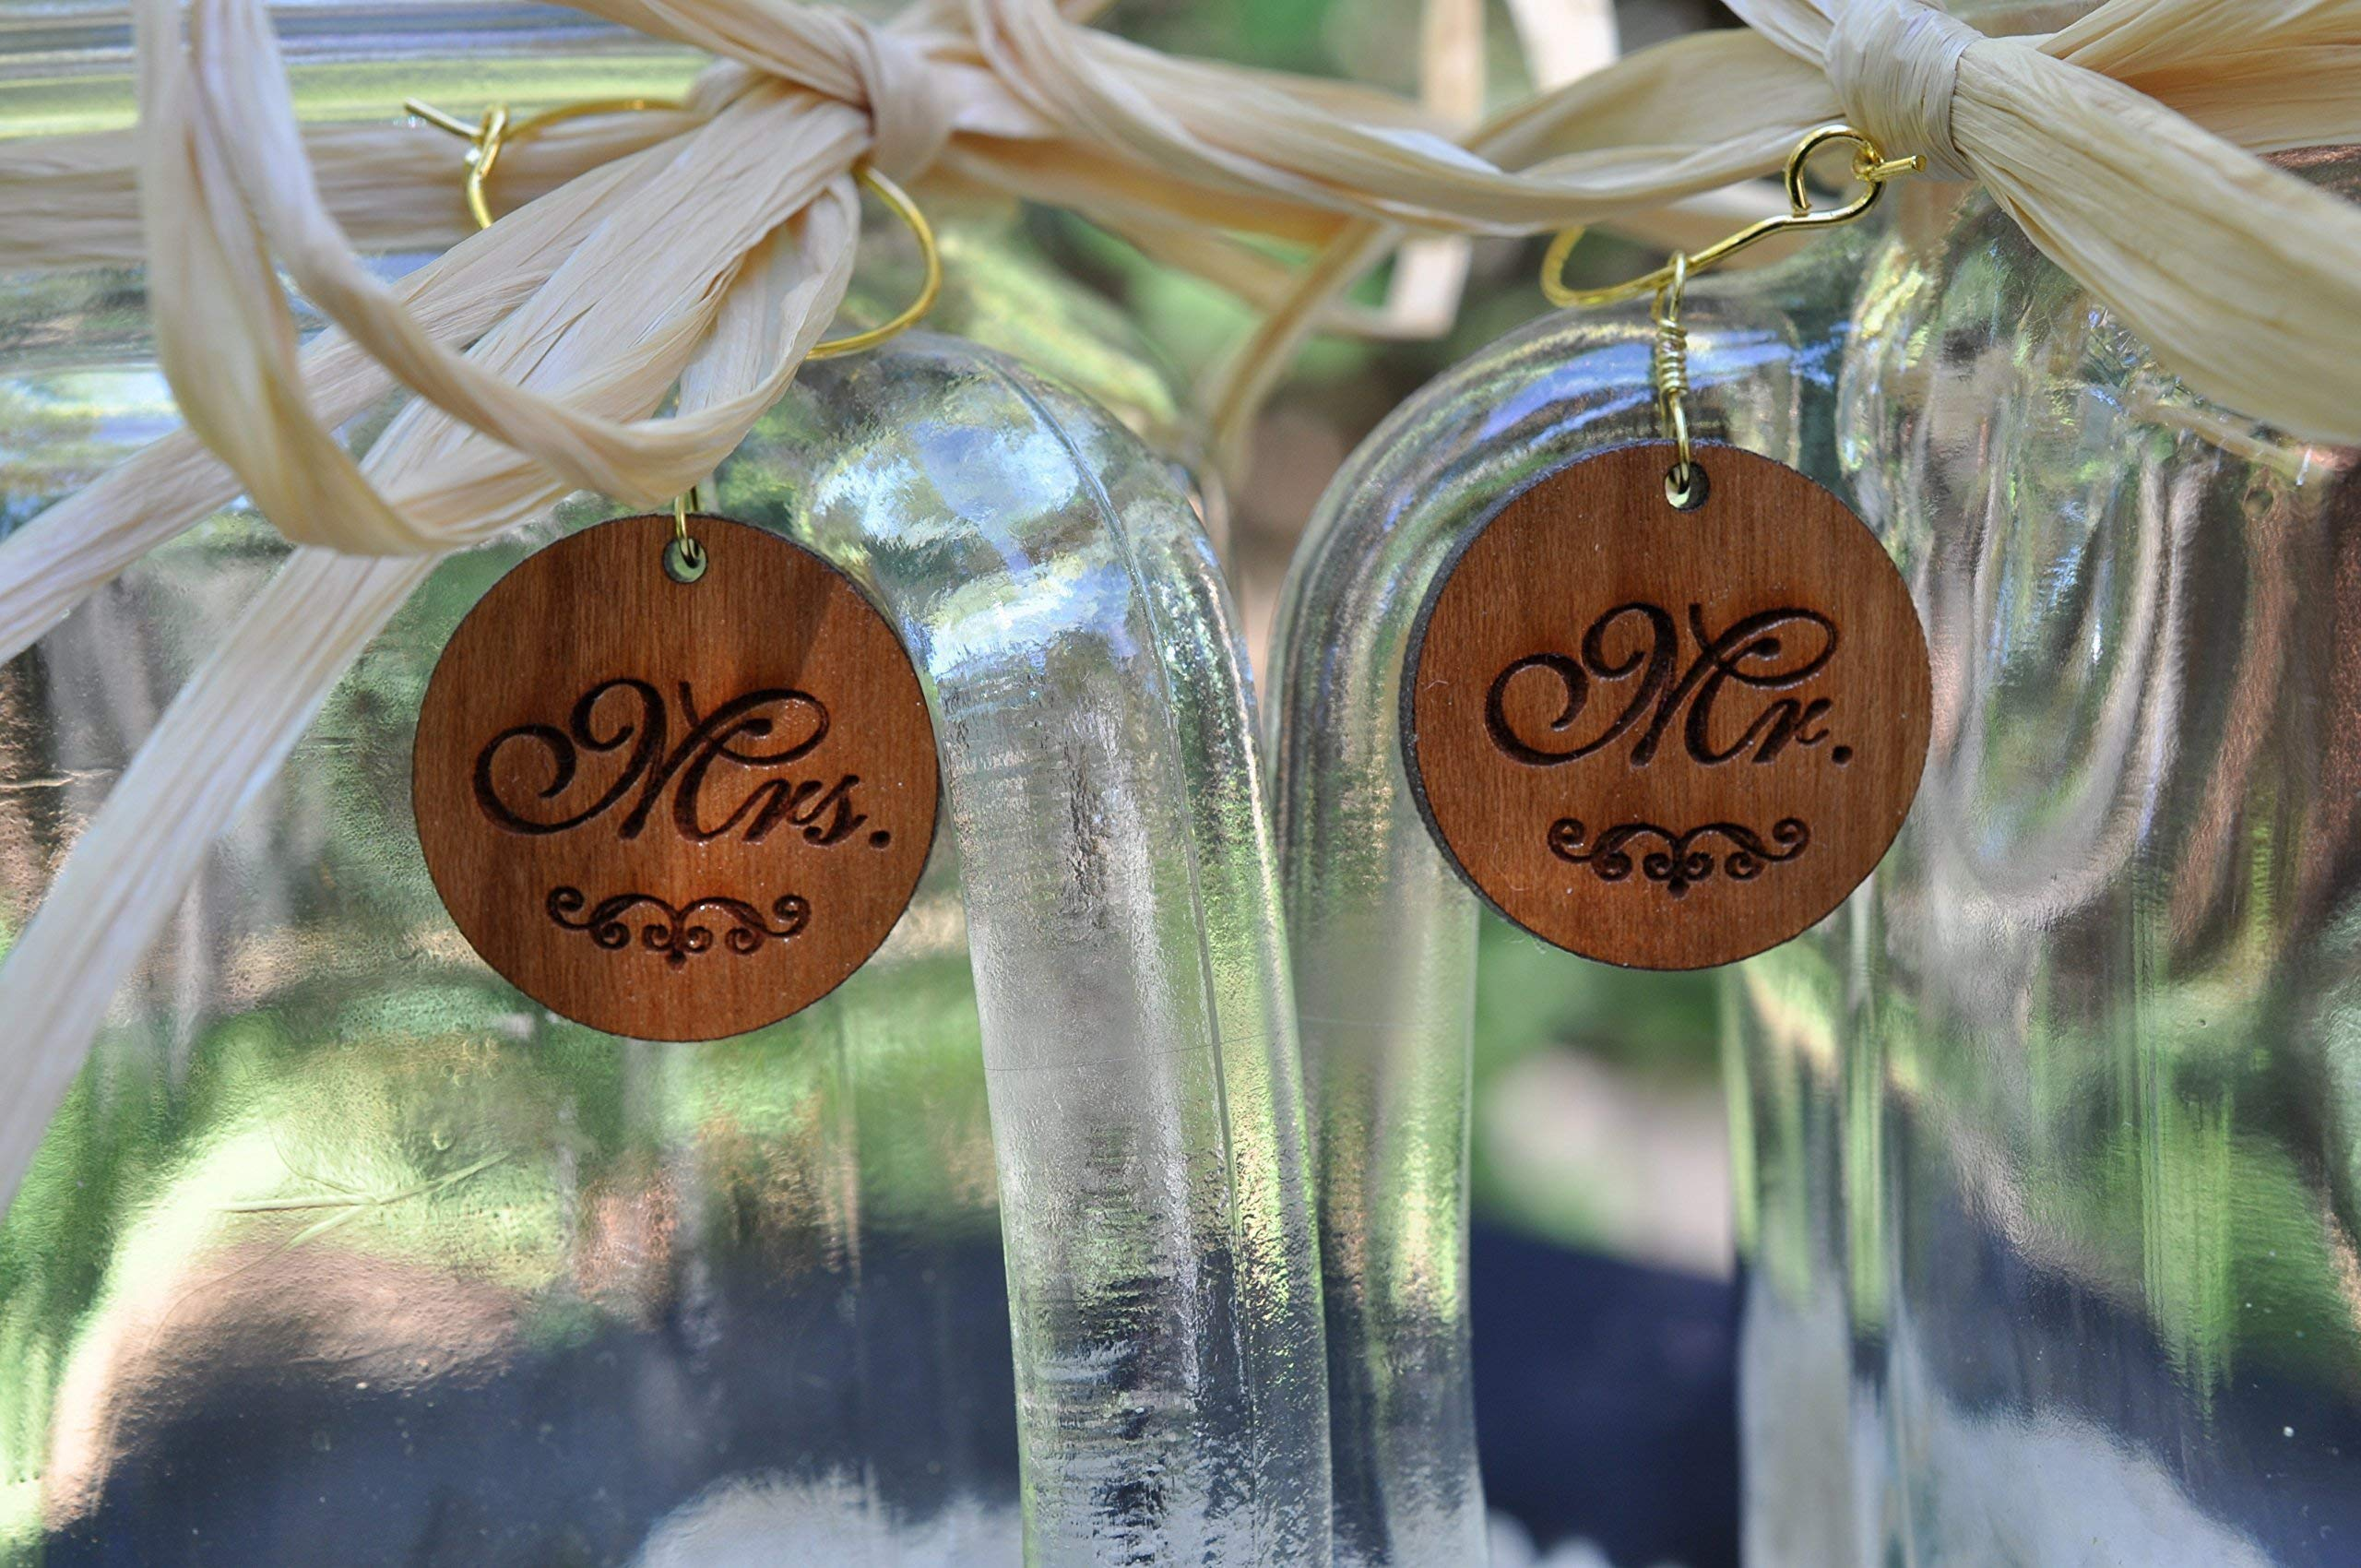 Bride and Groom Wedding Mason Jars for your Western Wedding Personalized with Name and Date. by Design Imagery Engraving (Image #3)